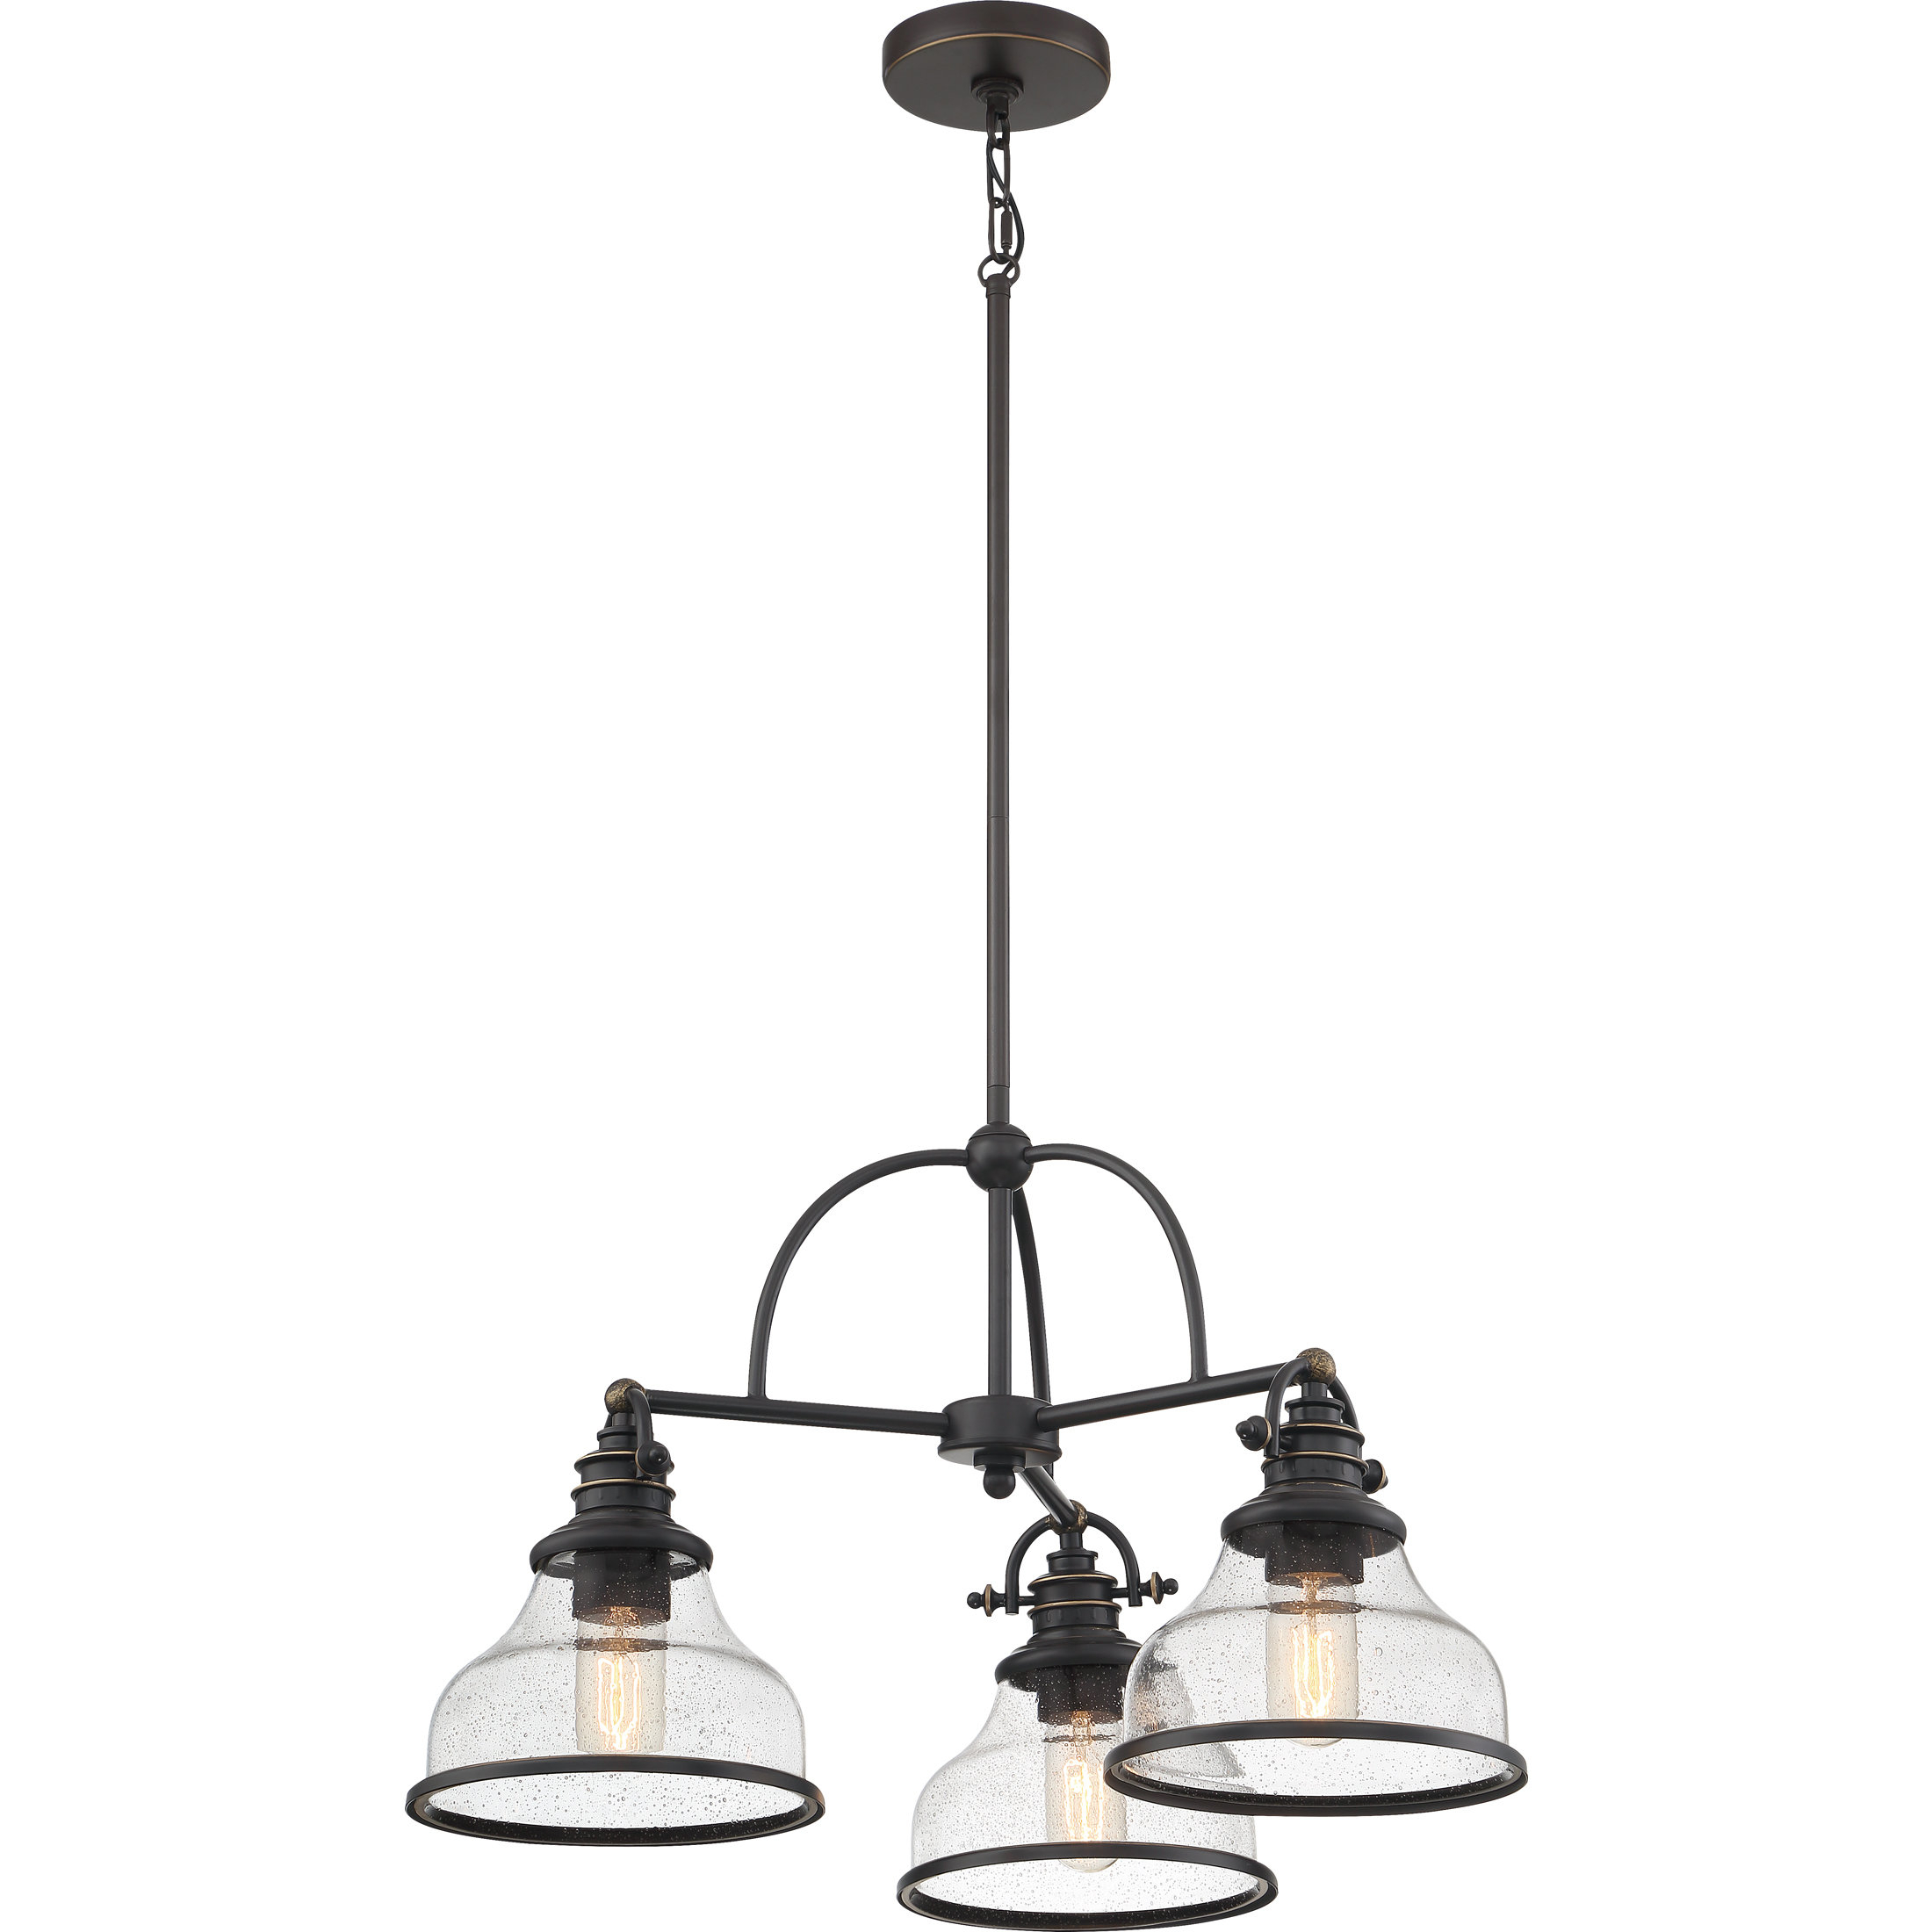 Red Barrel Studio Abernathy 1 Light Dome Pendant & Reviews Throughout Well Known Abernathy 1 Light Dome Pendants (View 15 of 20)